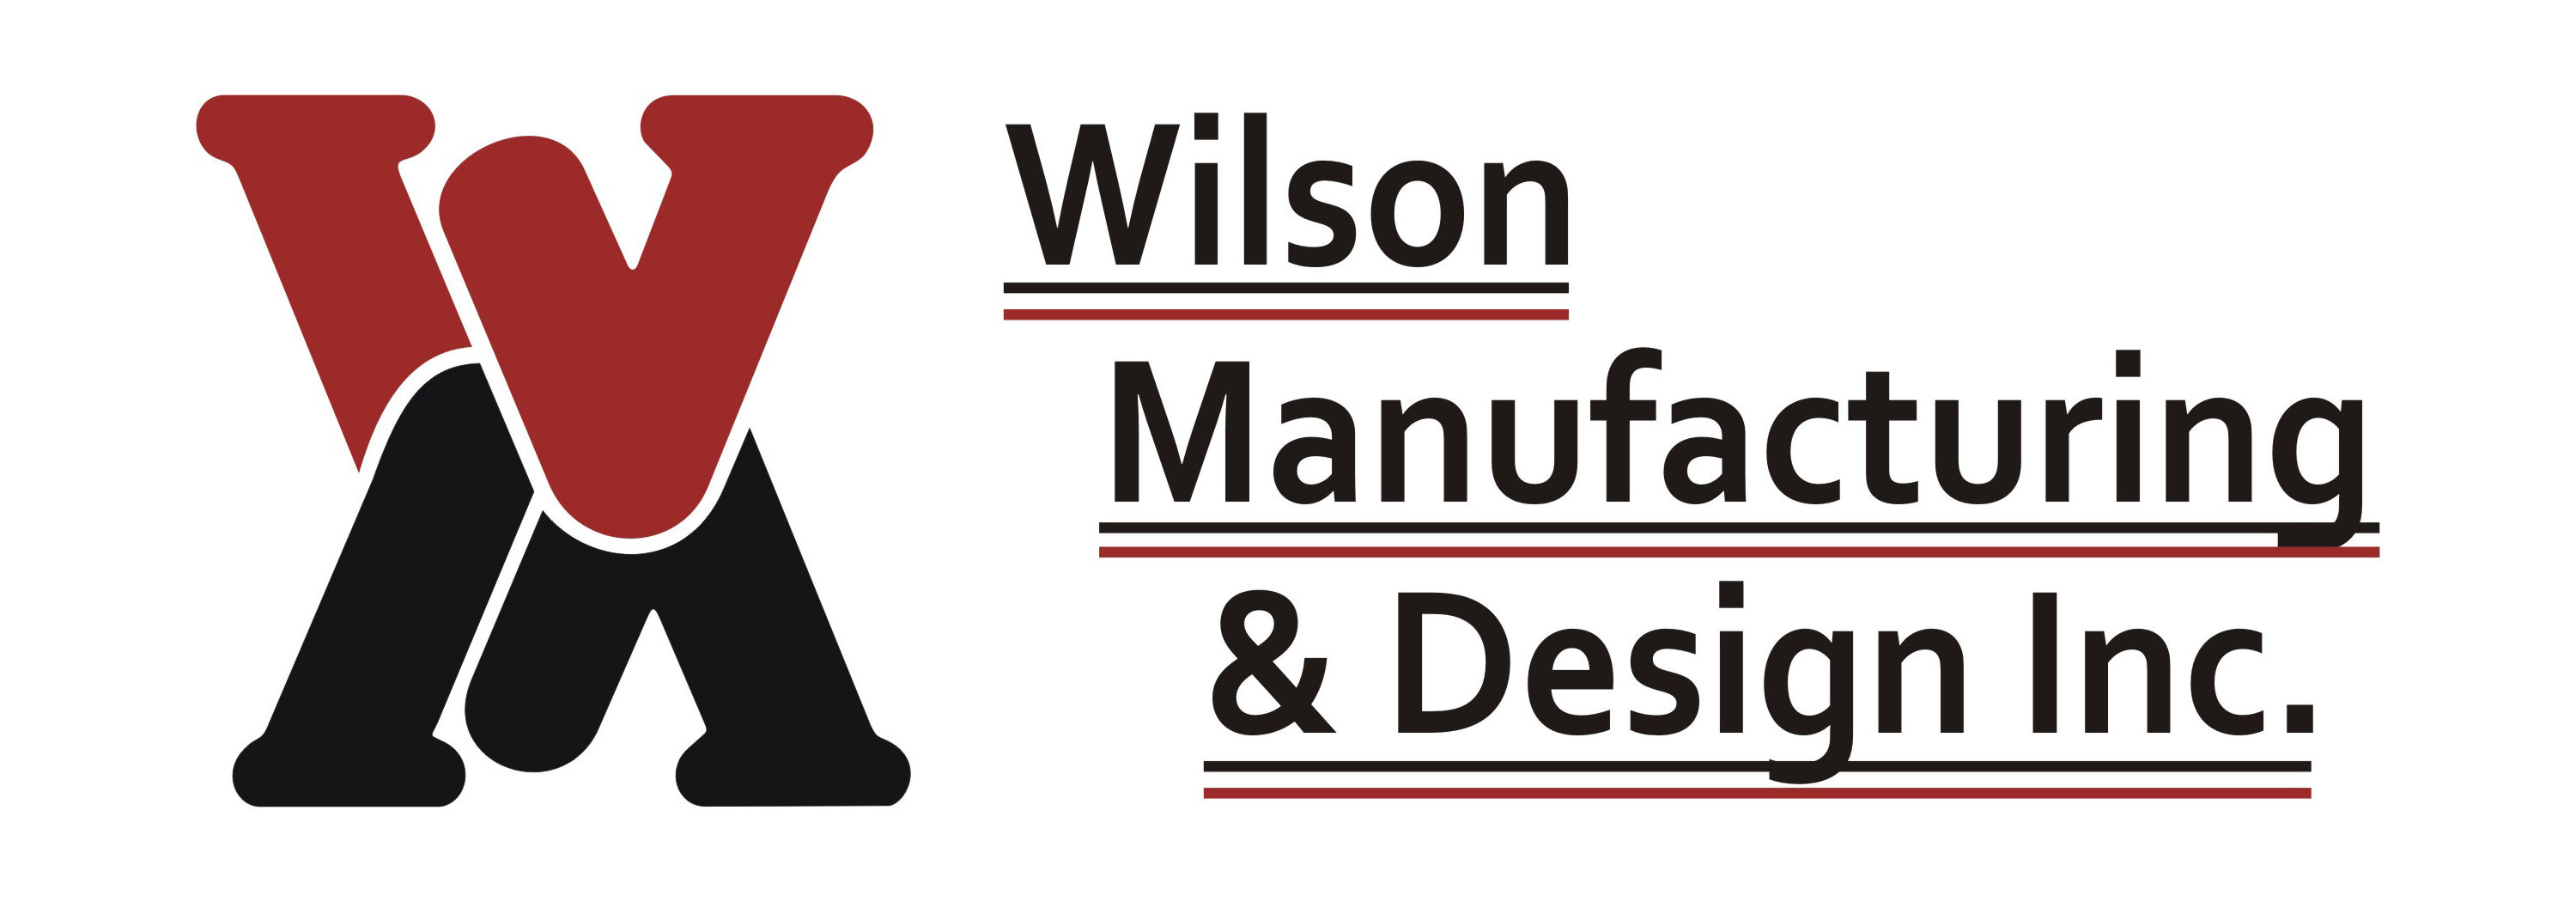 Wilson Manufacturing & Design Inc.